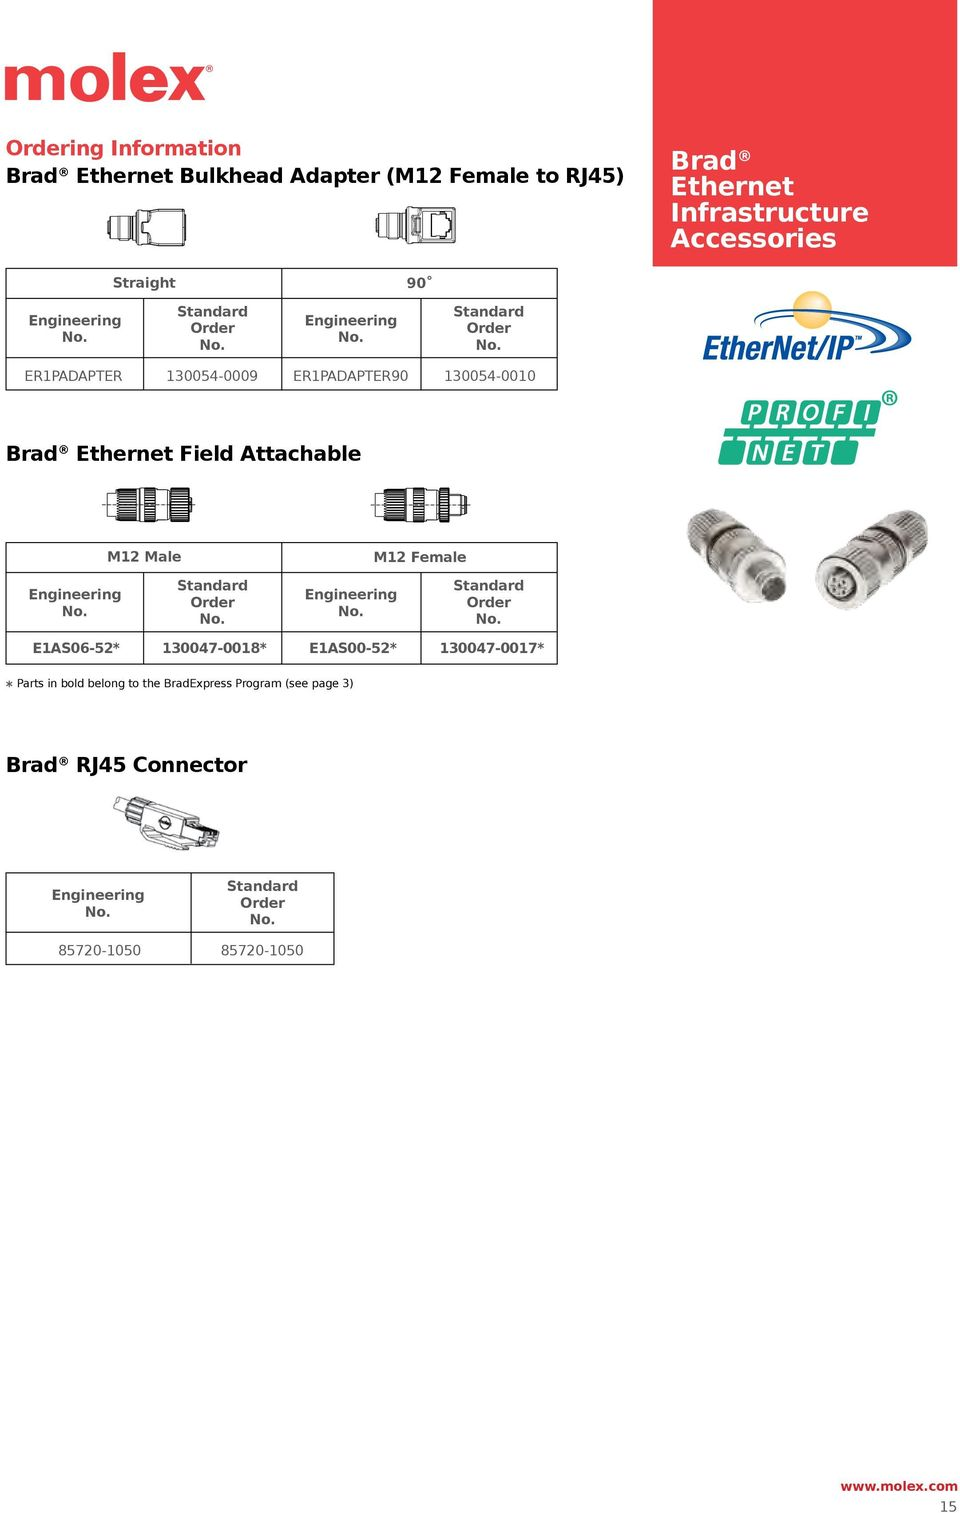 Ethernet Field Attachable M12 Male M12 Female E1AS06-2* 1007-0018* E1AS00-2*